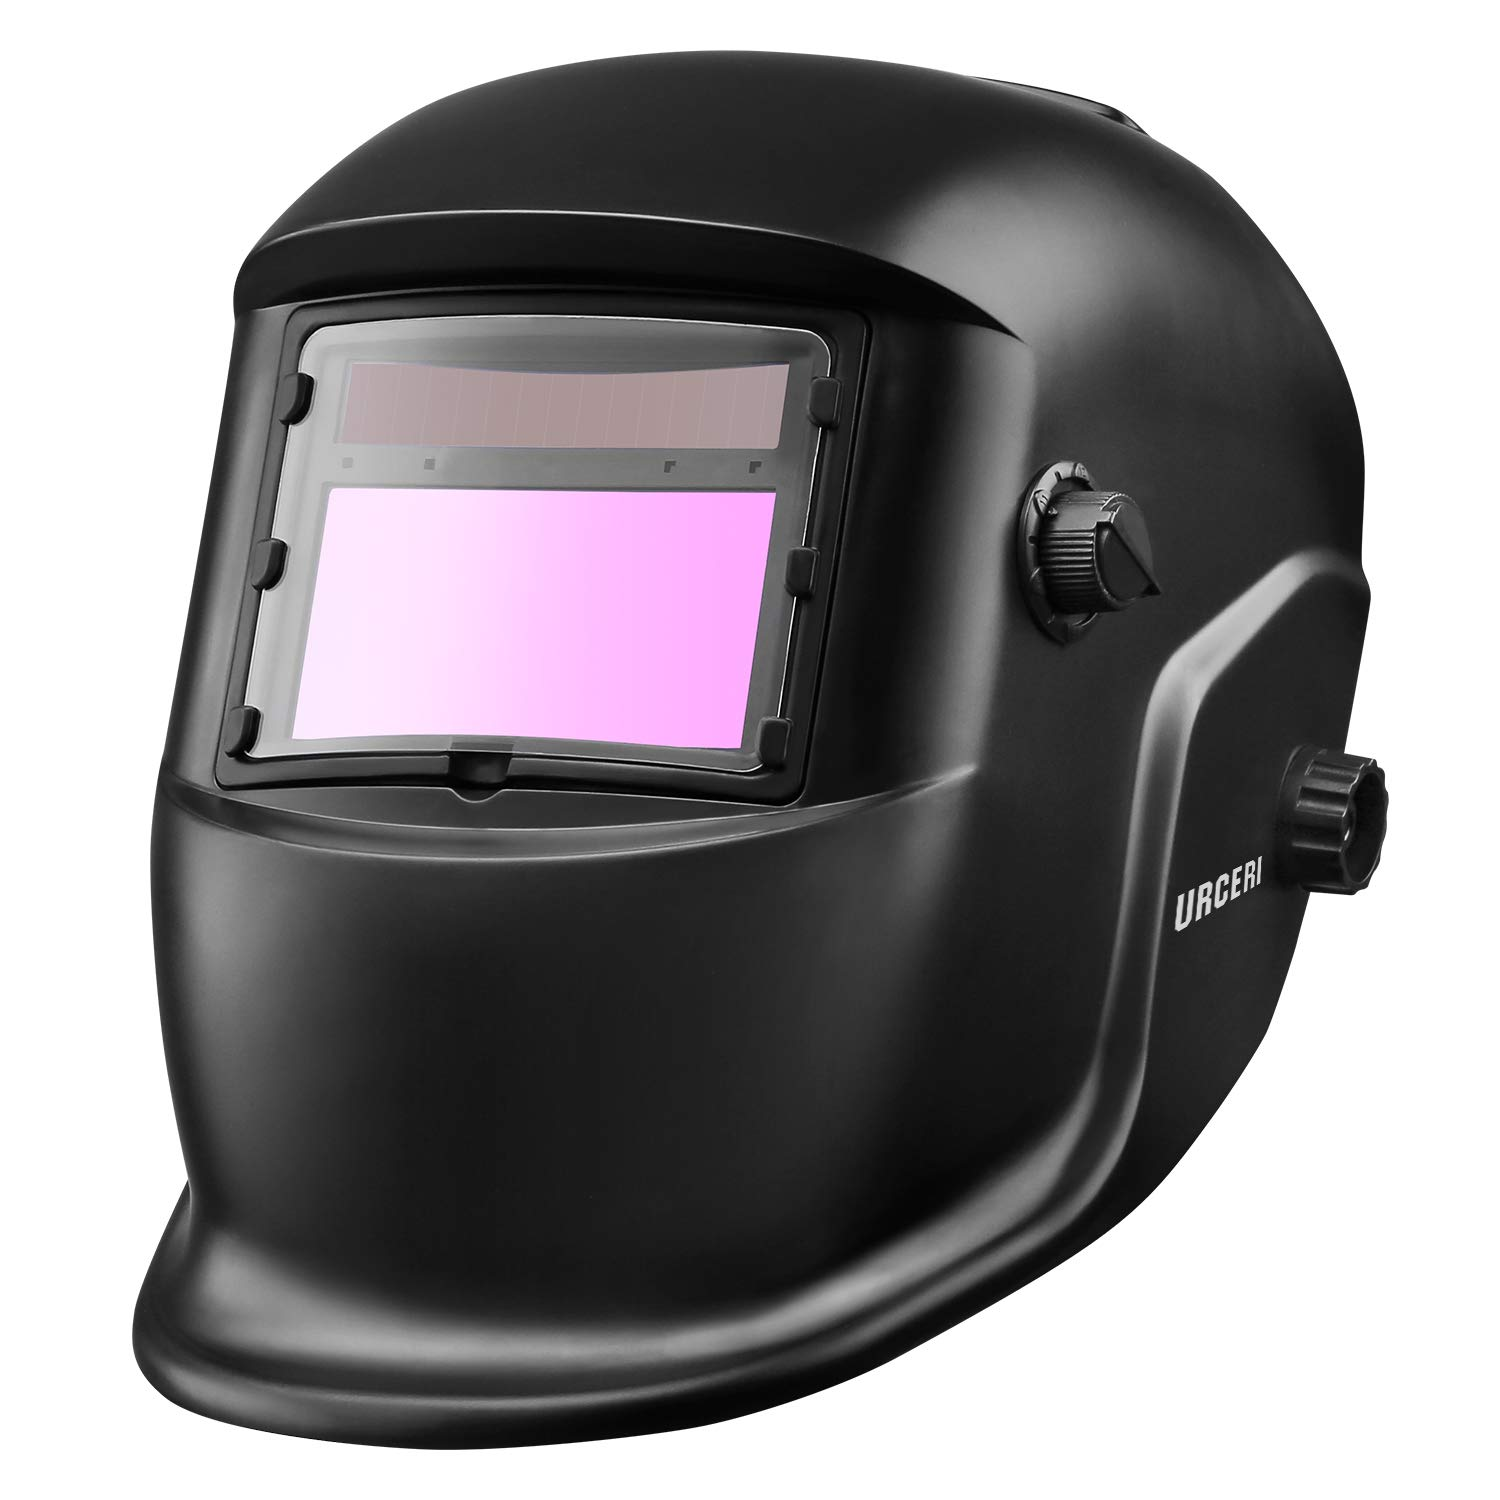 URCERI Welding Helmet Auto Darkening,Welding Mask with Large Field of View Features 4 Arc Sensors for Indoor Outdoor Welding Supports Grinding Feature for TIG MIG MMA Applications comes with Adjustabl